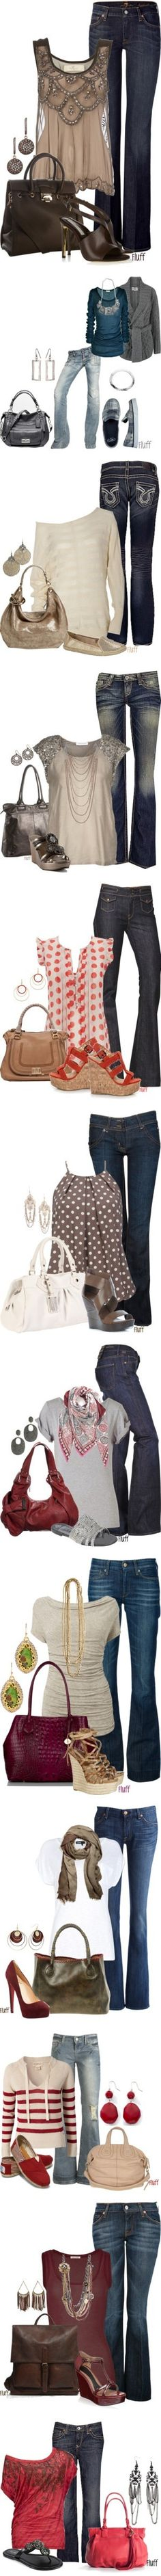 I love to dress up my jeans using accessories and cute tops. These great  looks will help inspire me. c828589f8c86a